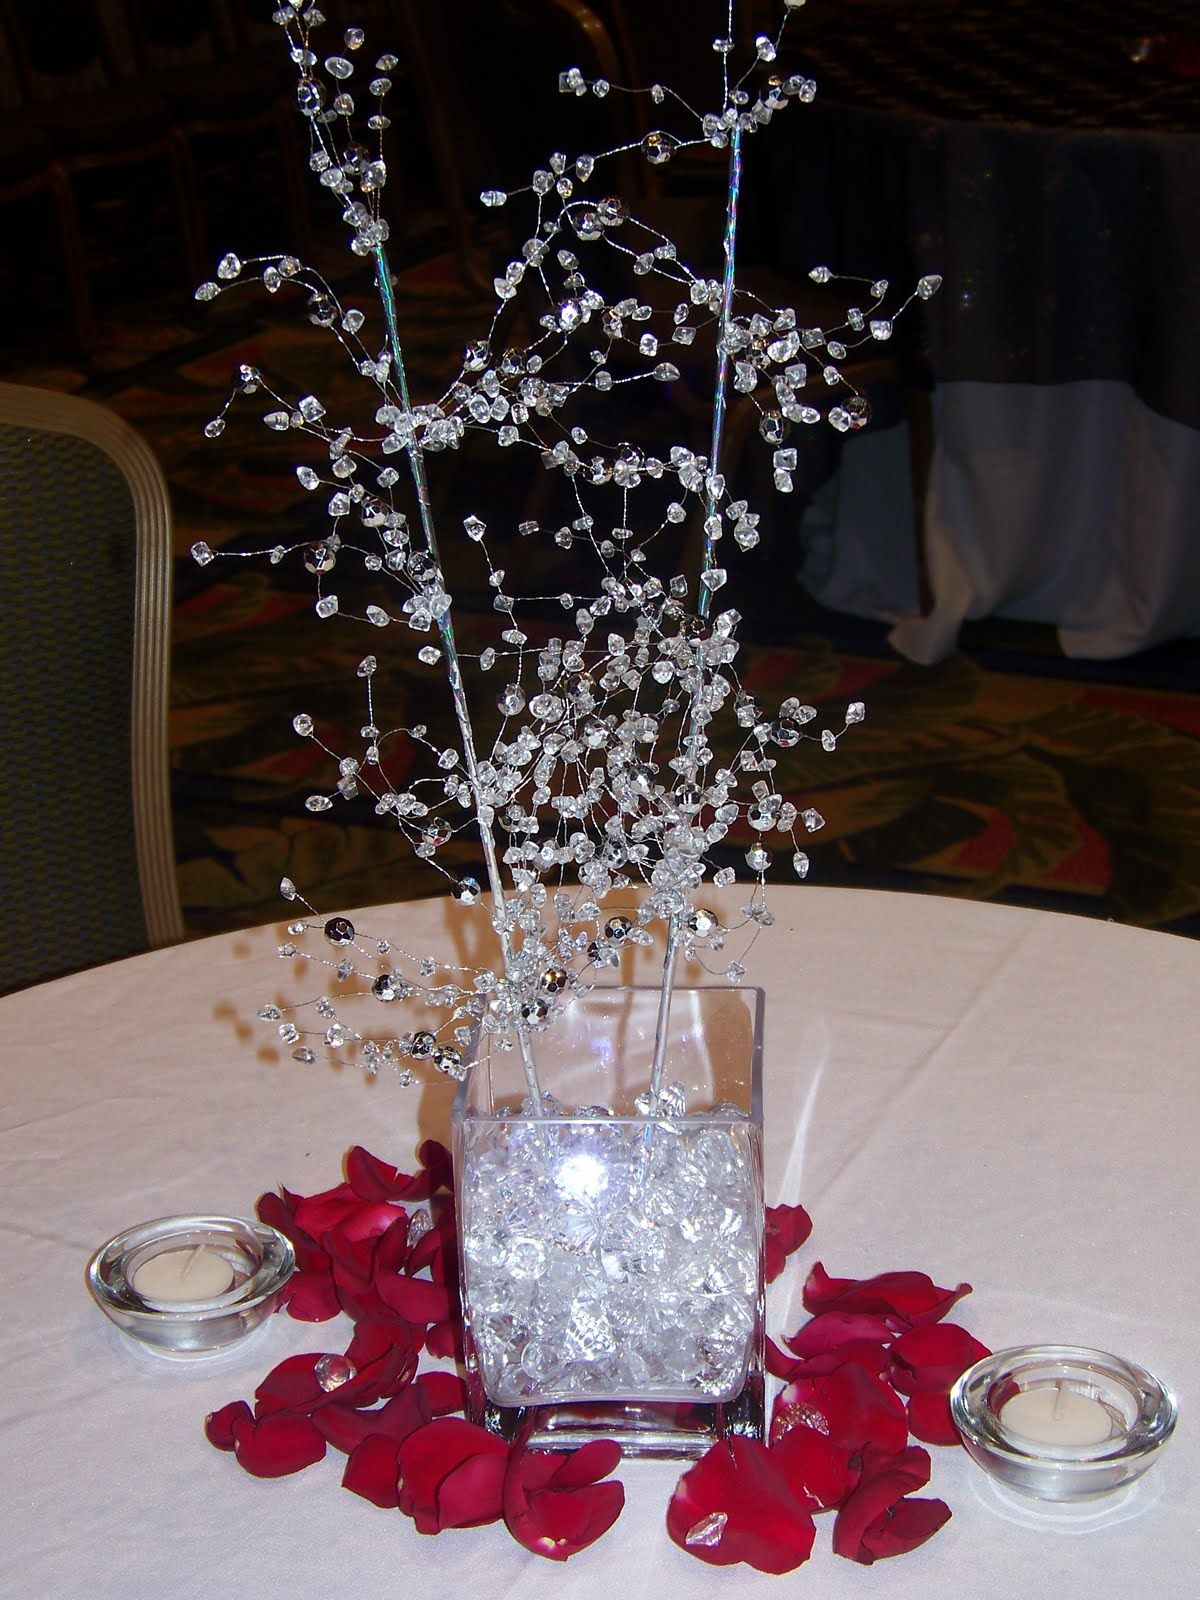 c44b79ec8e7f0 Smaller crystal centerpiece with red rose petals pics of our beaded  centerpieces Crystal Ballroom Marriott World Cen.